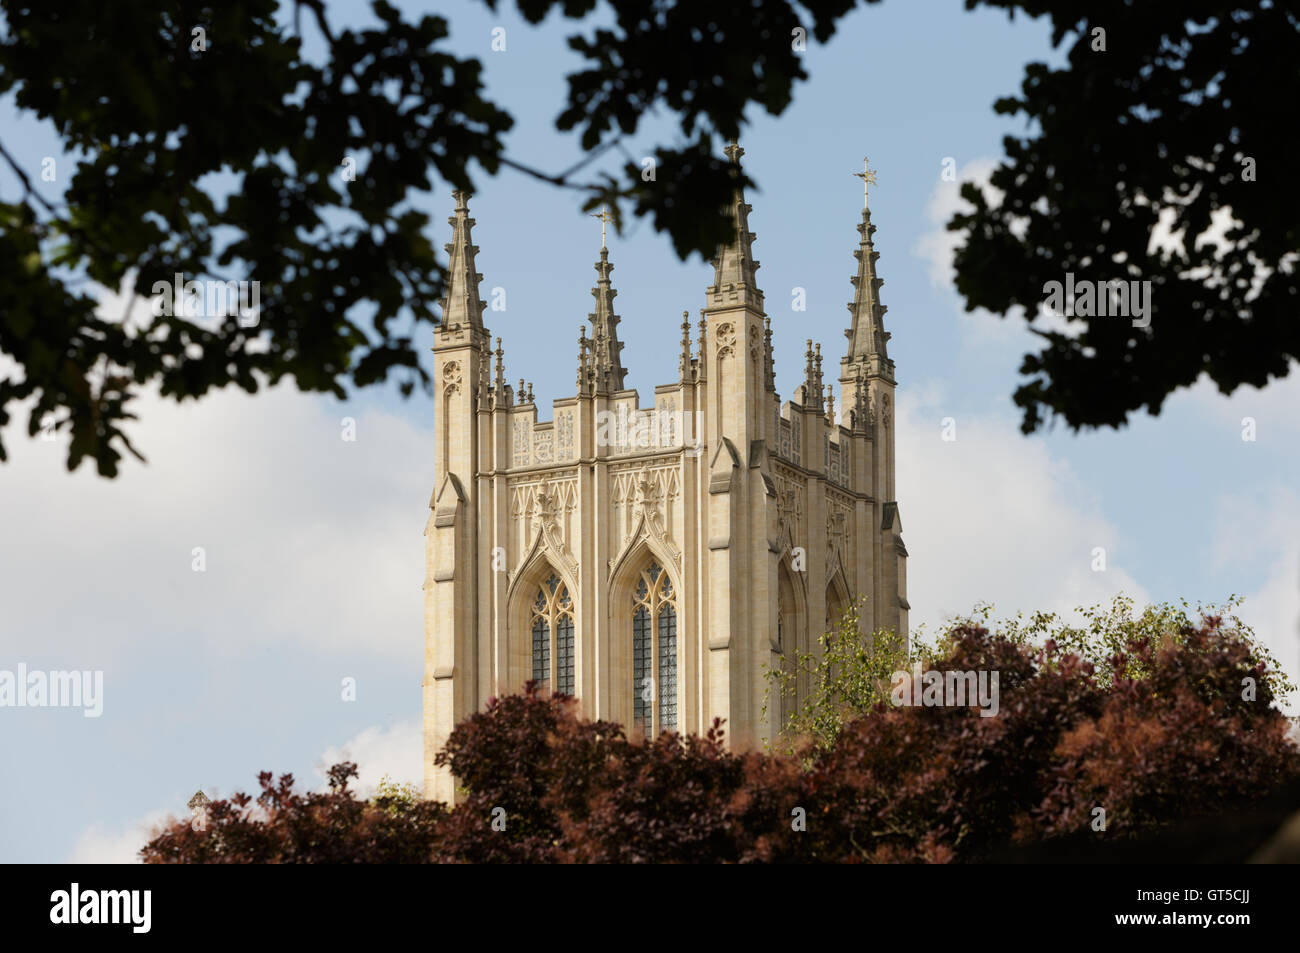 Stone tower and finials of St Edmundsbury Cathedral Bury St Edmunds, Suffolk, framed by trees. Unsharpened - Stock Image